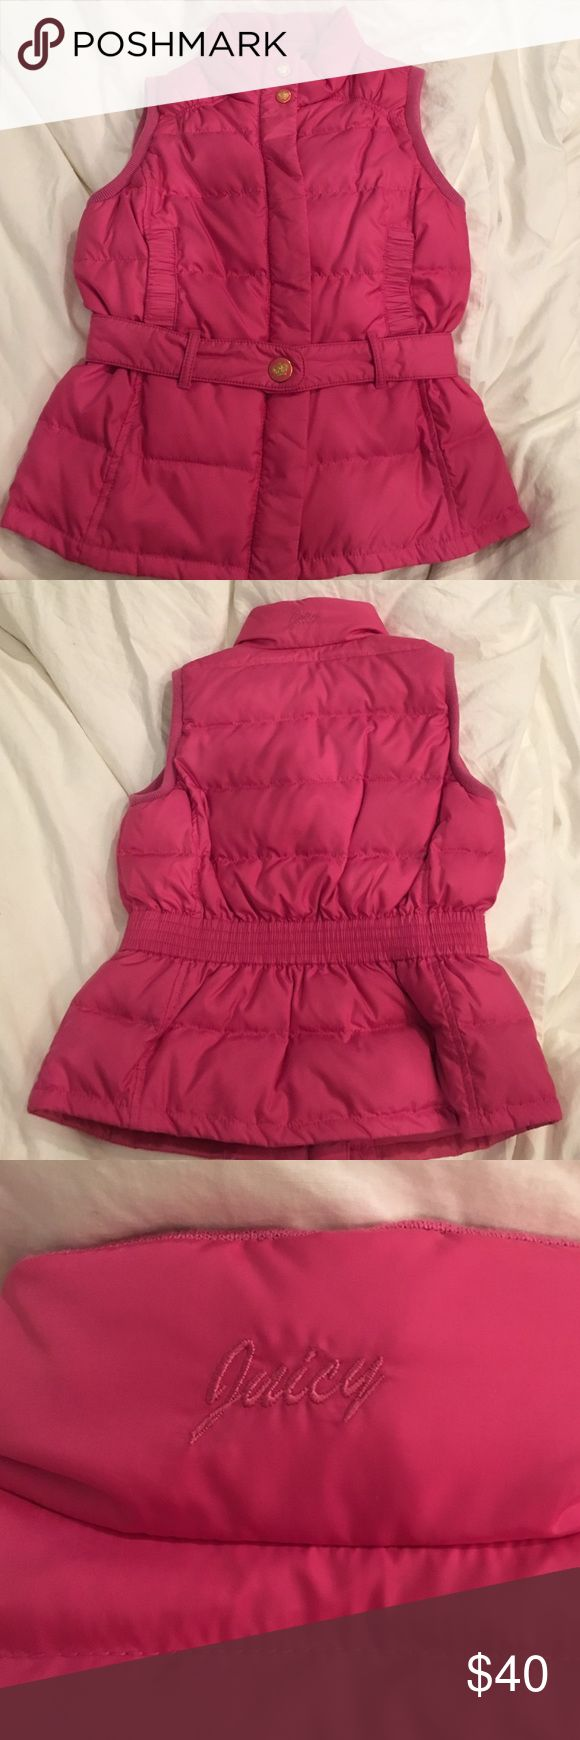 Authentic Juicy Couture Kids 10 Pink Vest Barely used, perfect condition. Honestly the cutest best I've ever seen. Belted with gold juicy buttons. Pockets. Kids 10 Juicy Couture Jackets & Coats Vests